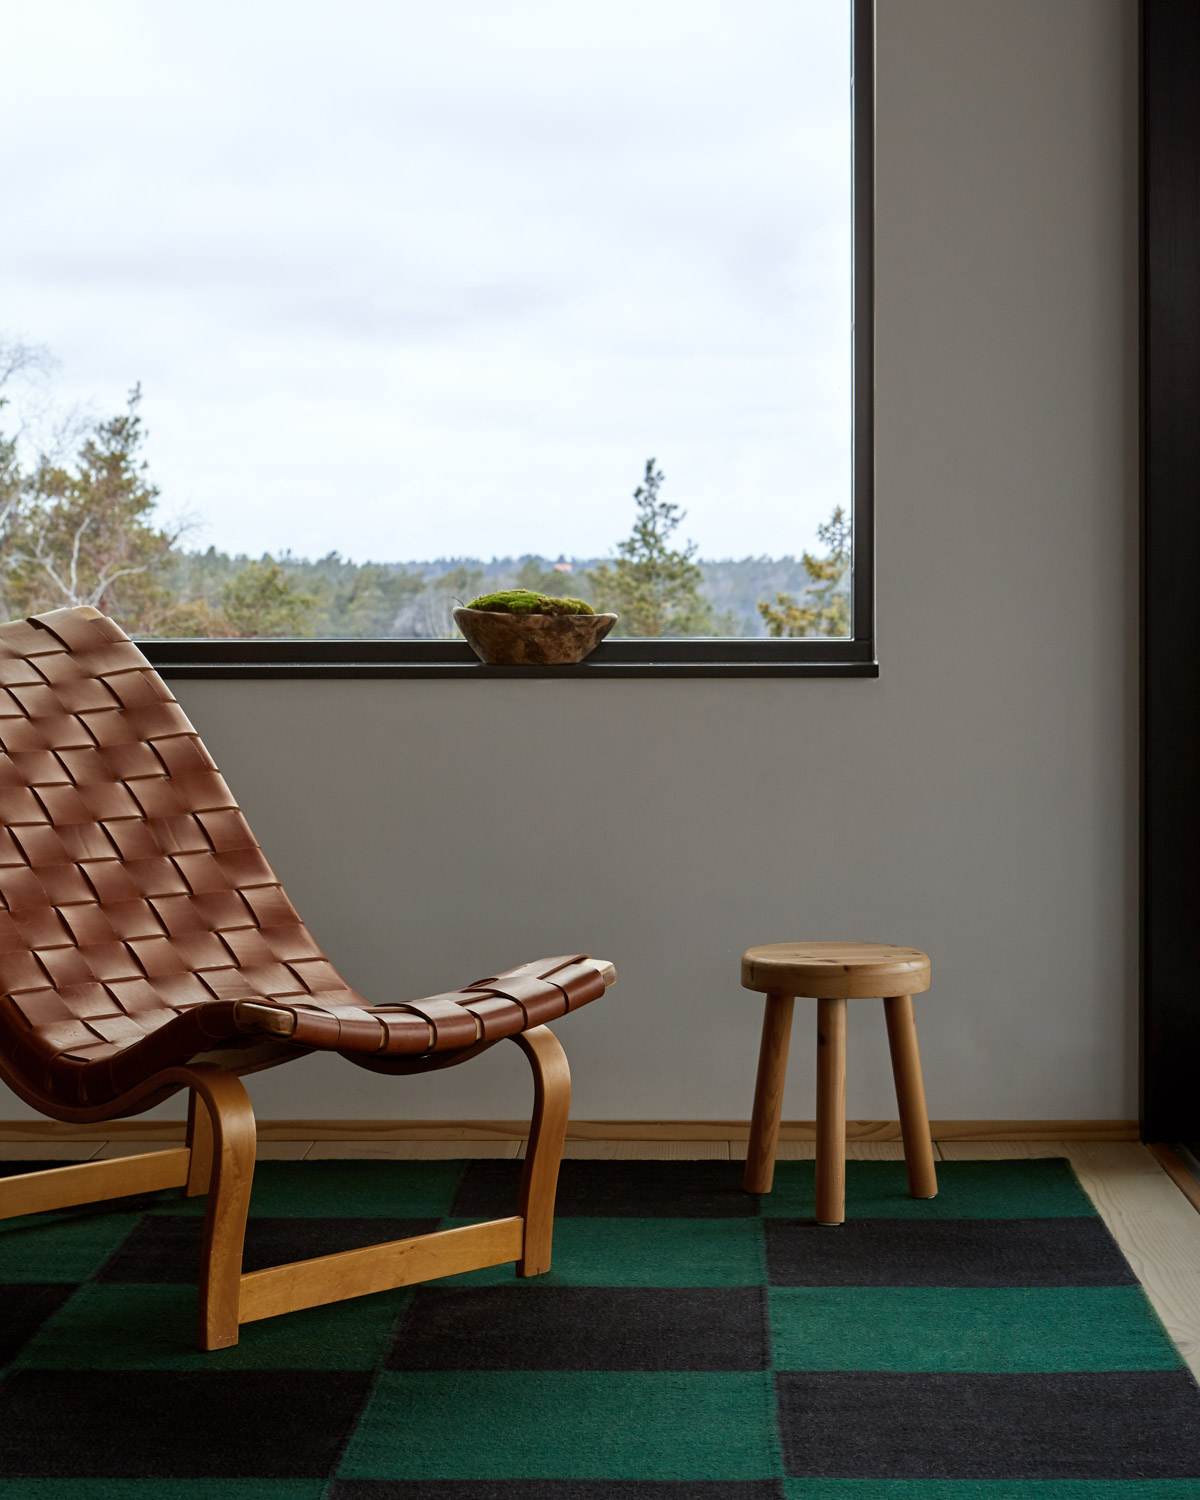 The Square green/black flatweave rug with a vintage armchair and stool.